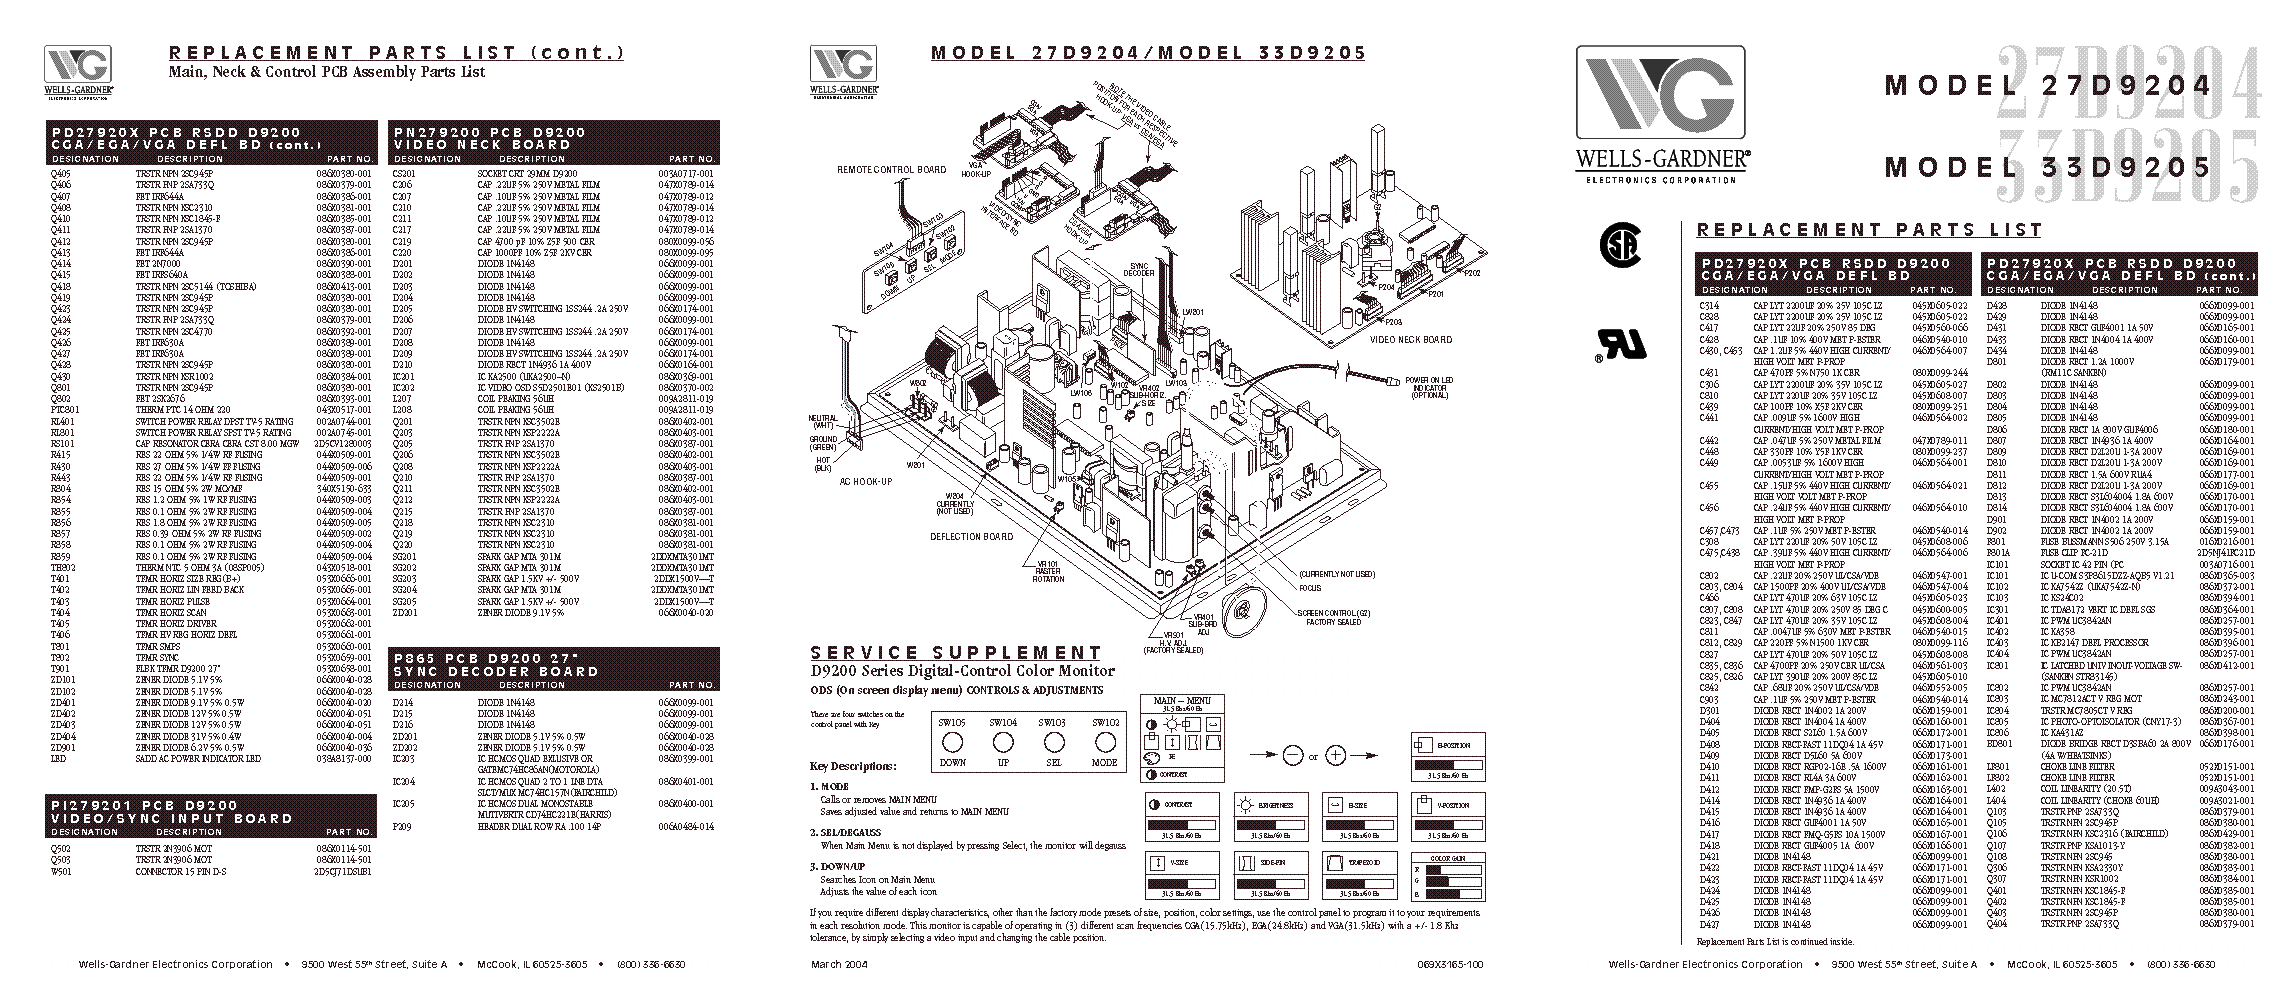 Wells Gardner D9200 27 Digital Monitor Sch Service Manual Download  Schematics  Eeprom  Repair